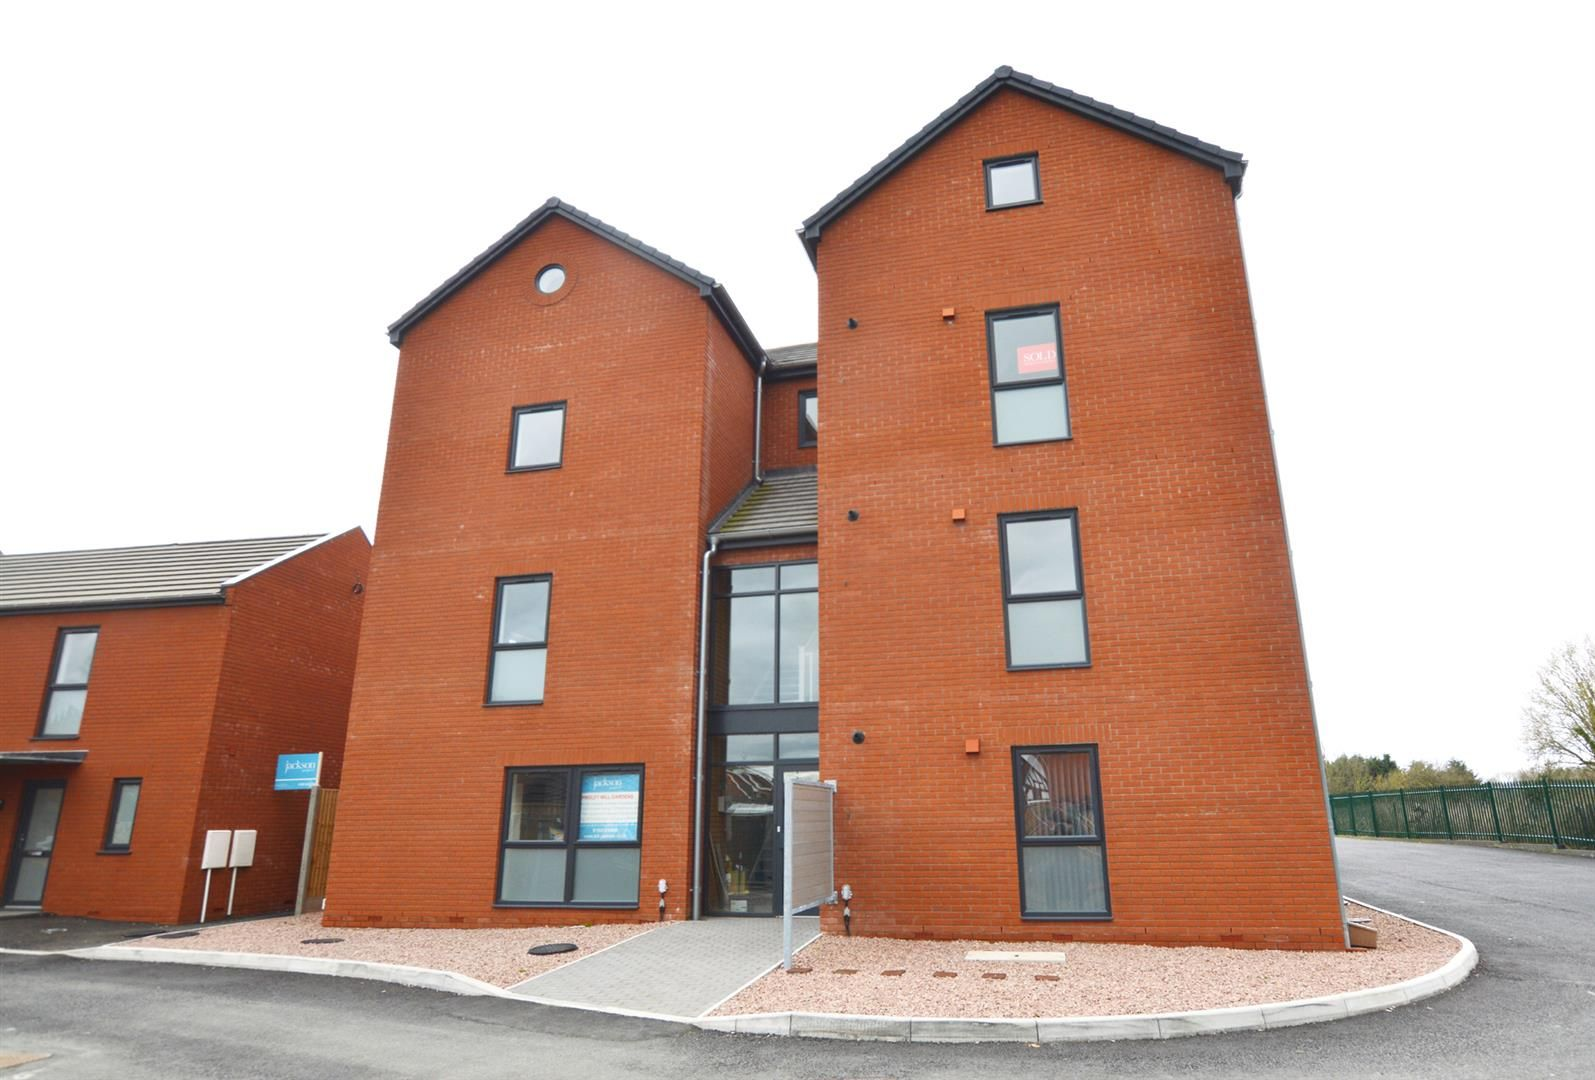 2 bed apartment for sale in Leominster - Property Image 1